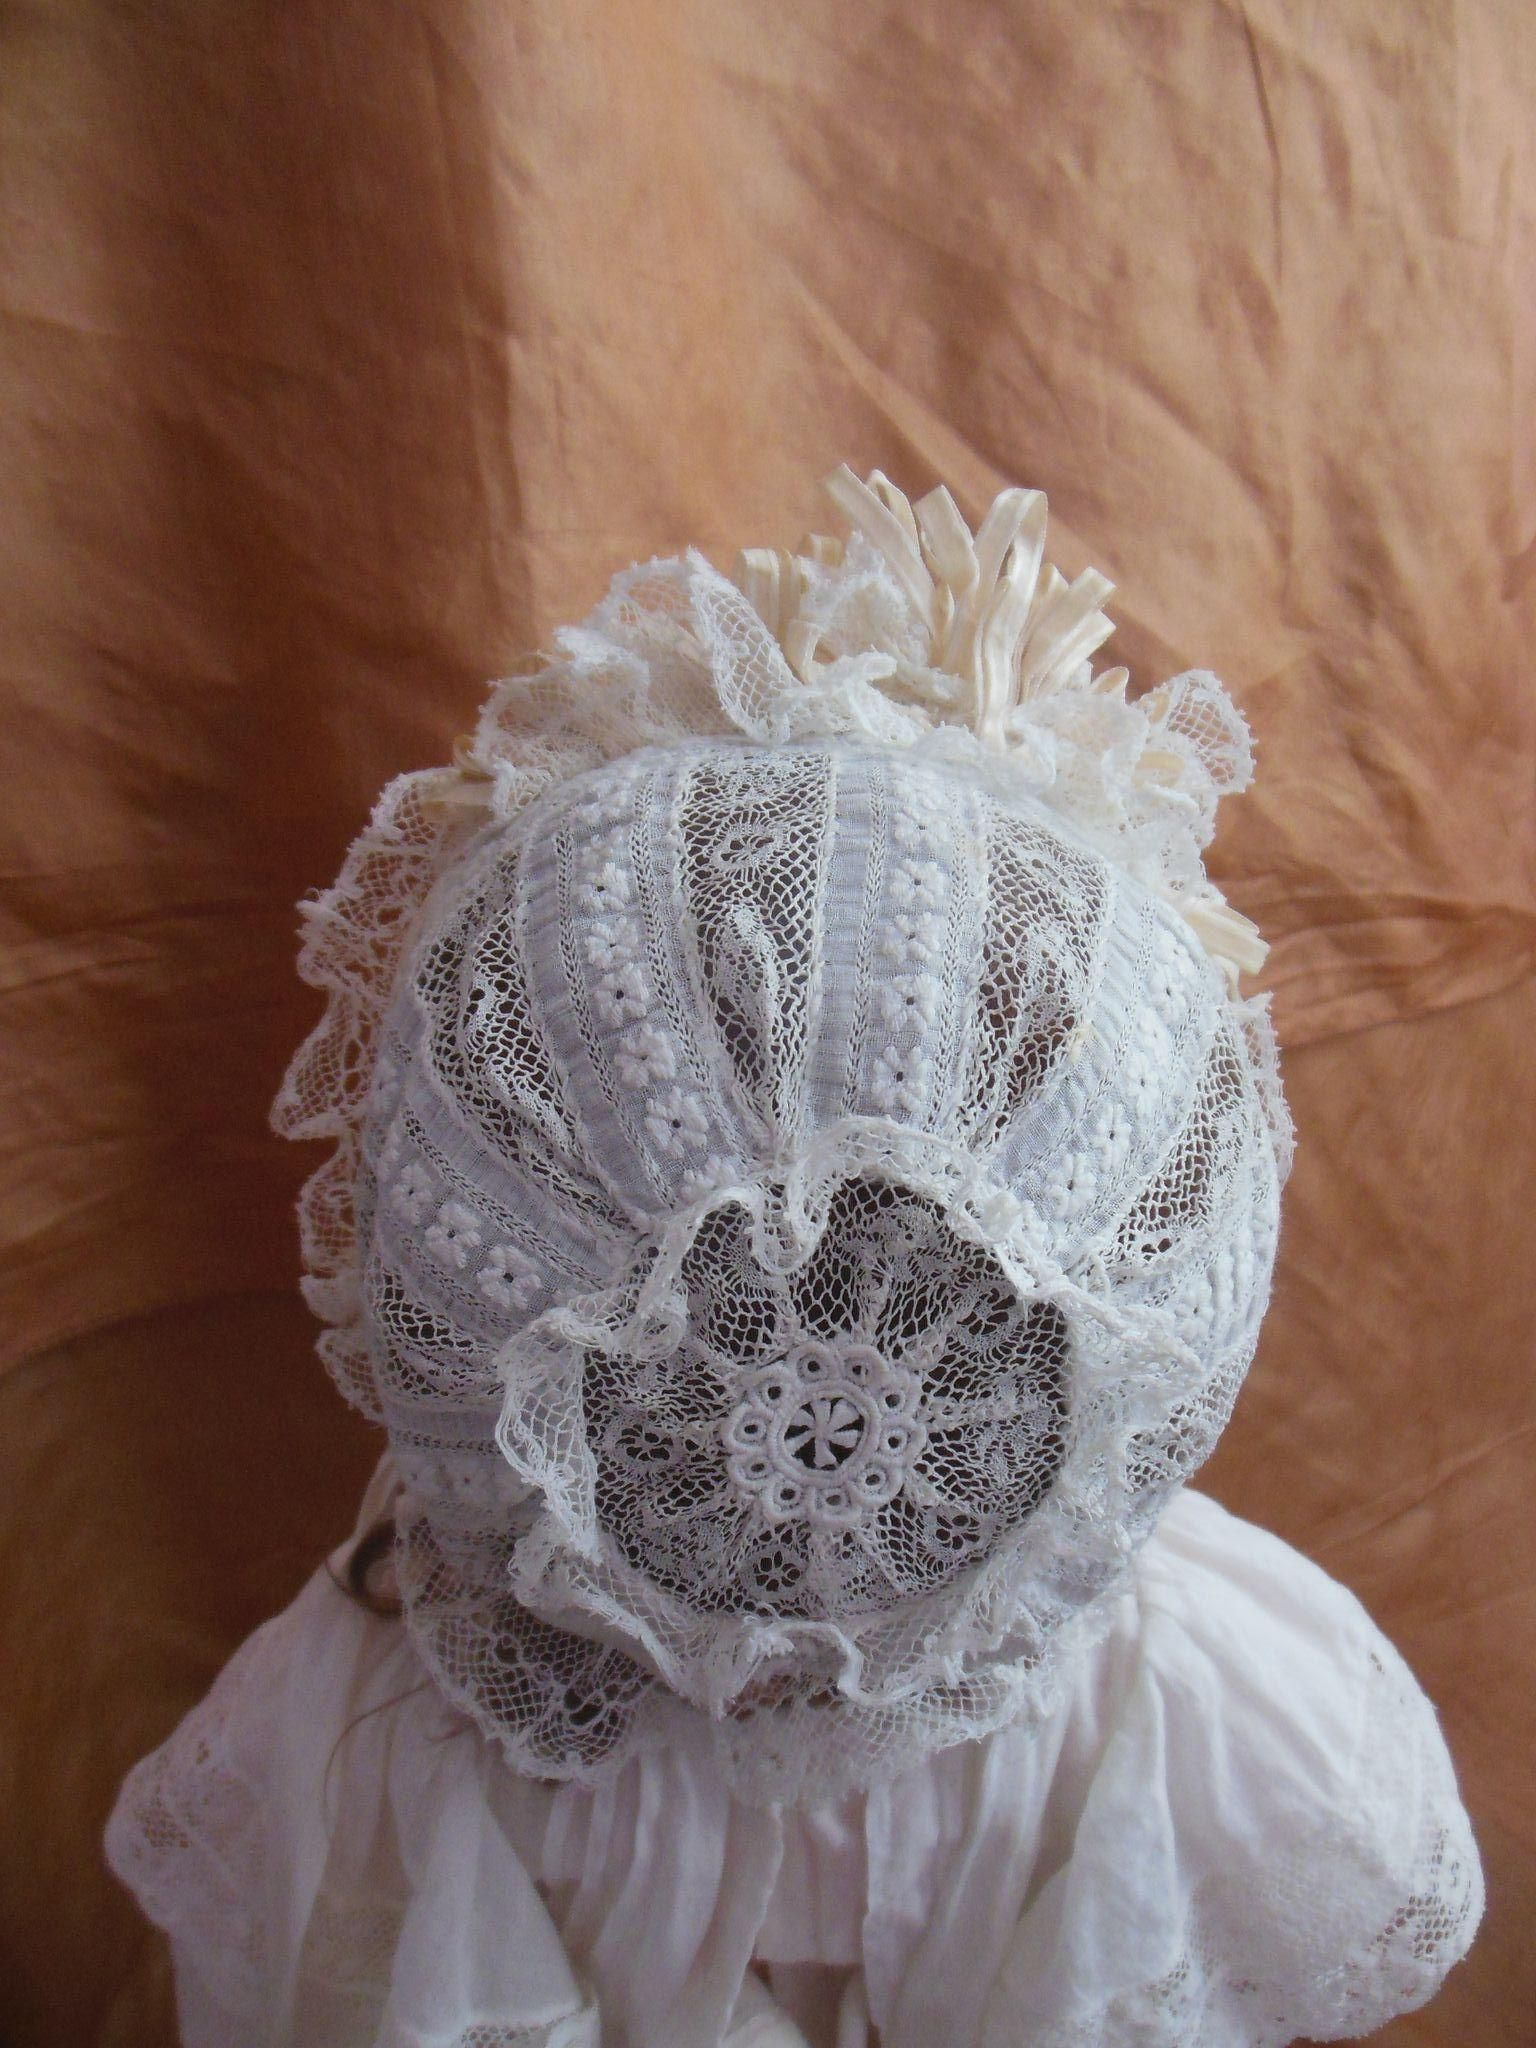 Antique Lace Bonnet For French Doll Small Size From All